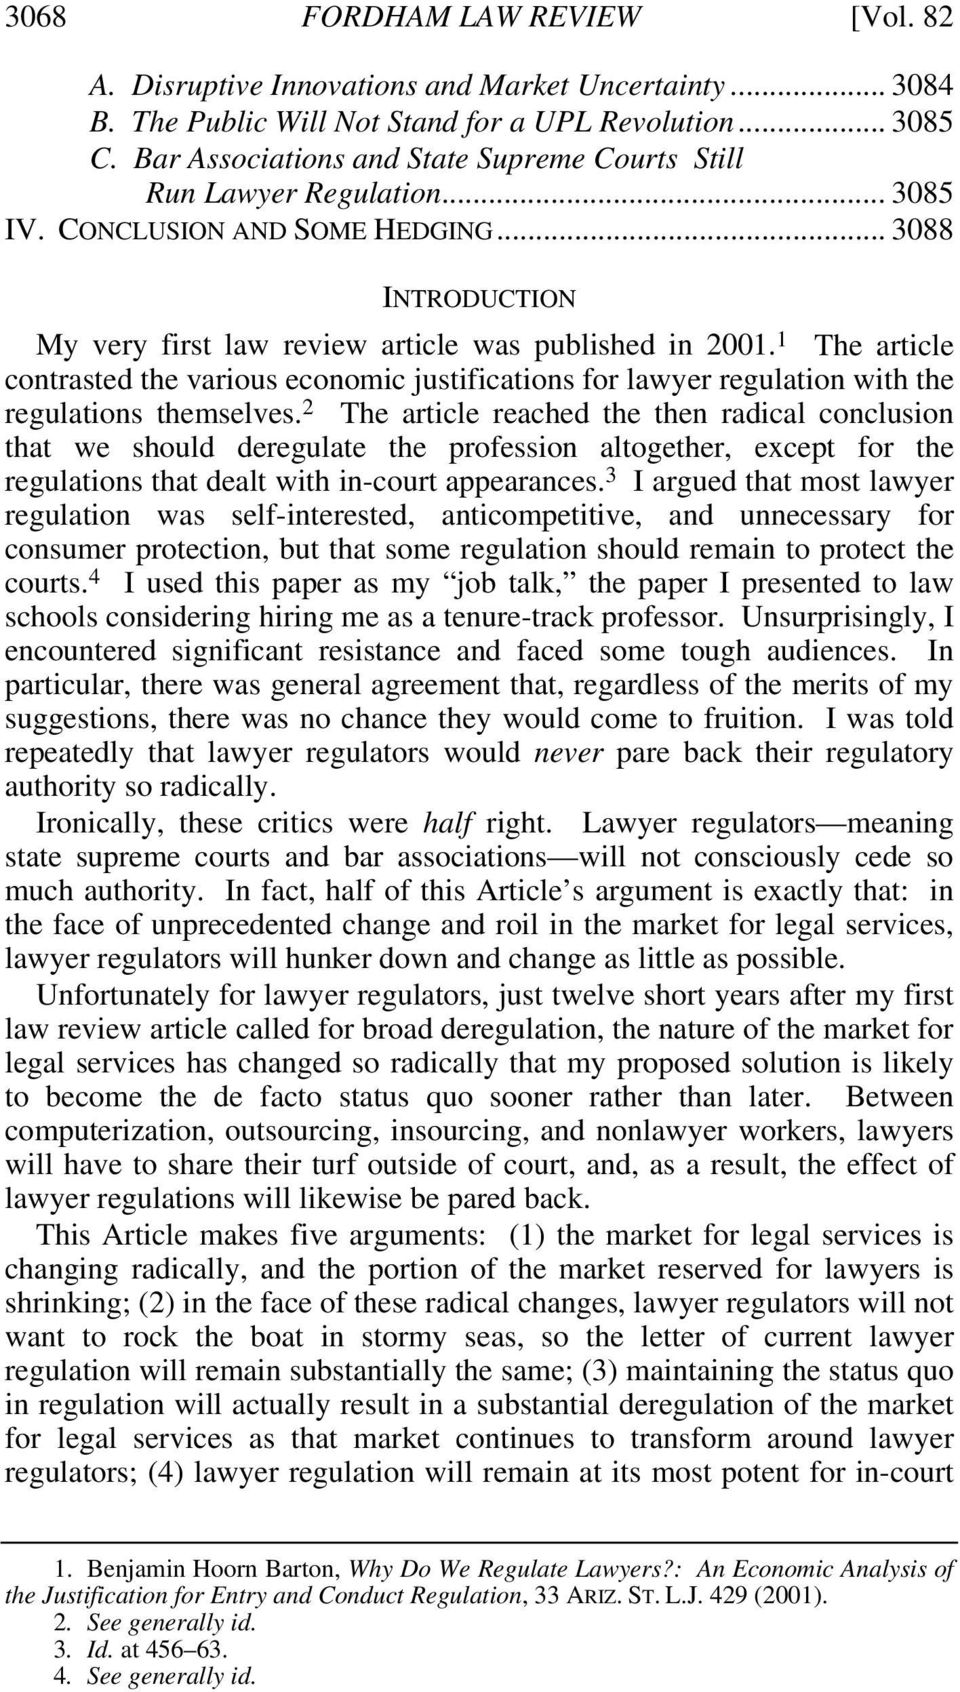 1 The article contrasted the various economic justifications for lawyer regulation with the regulations themselves.